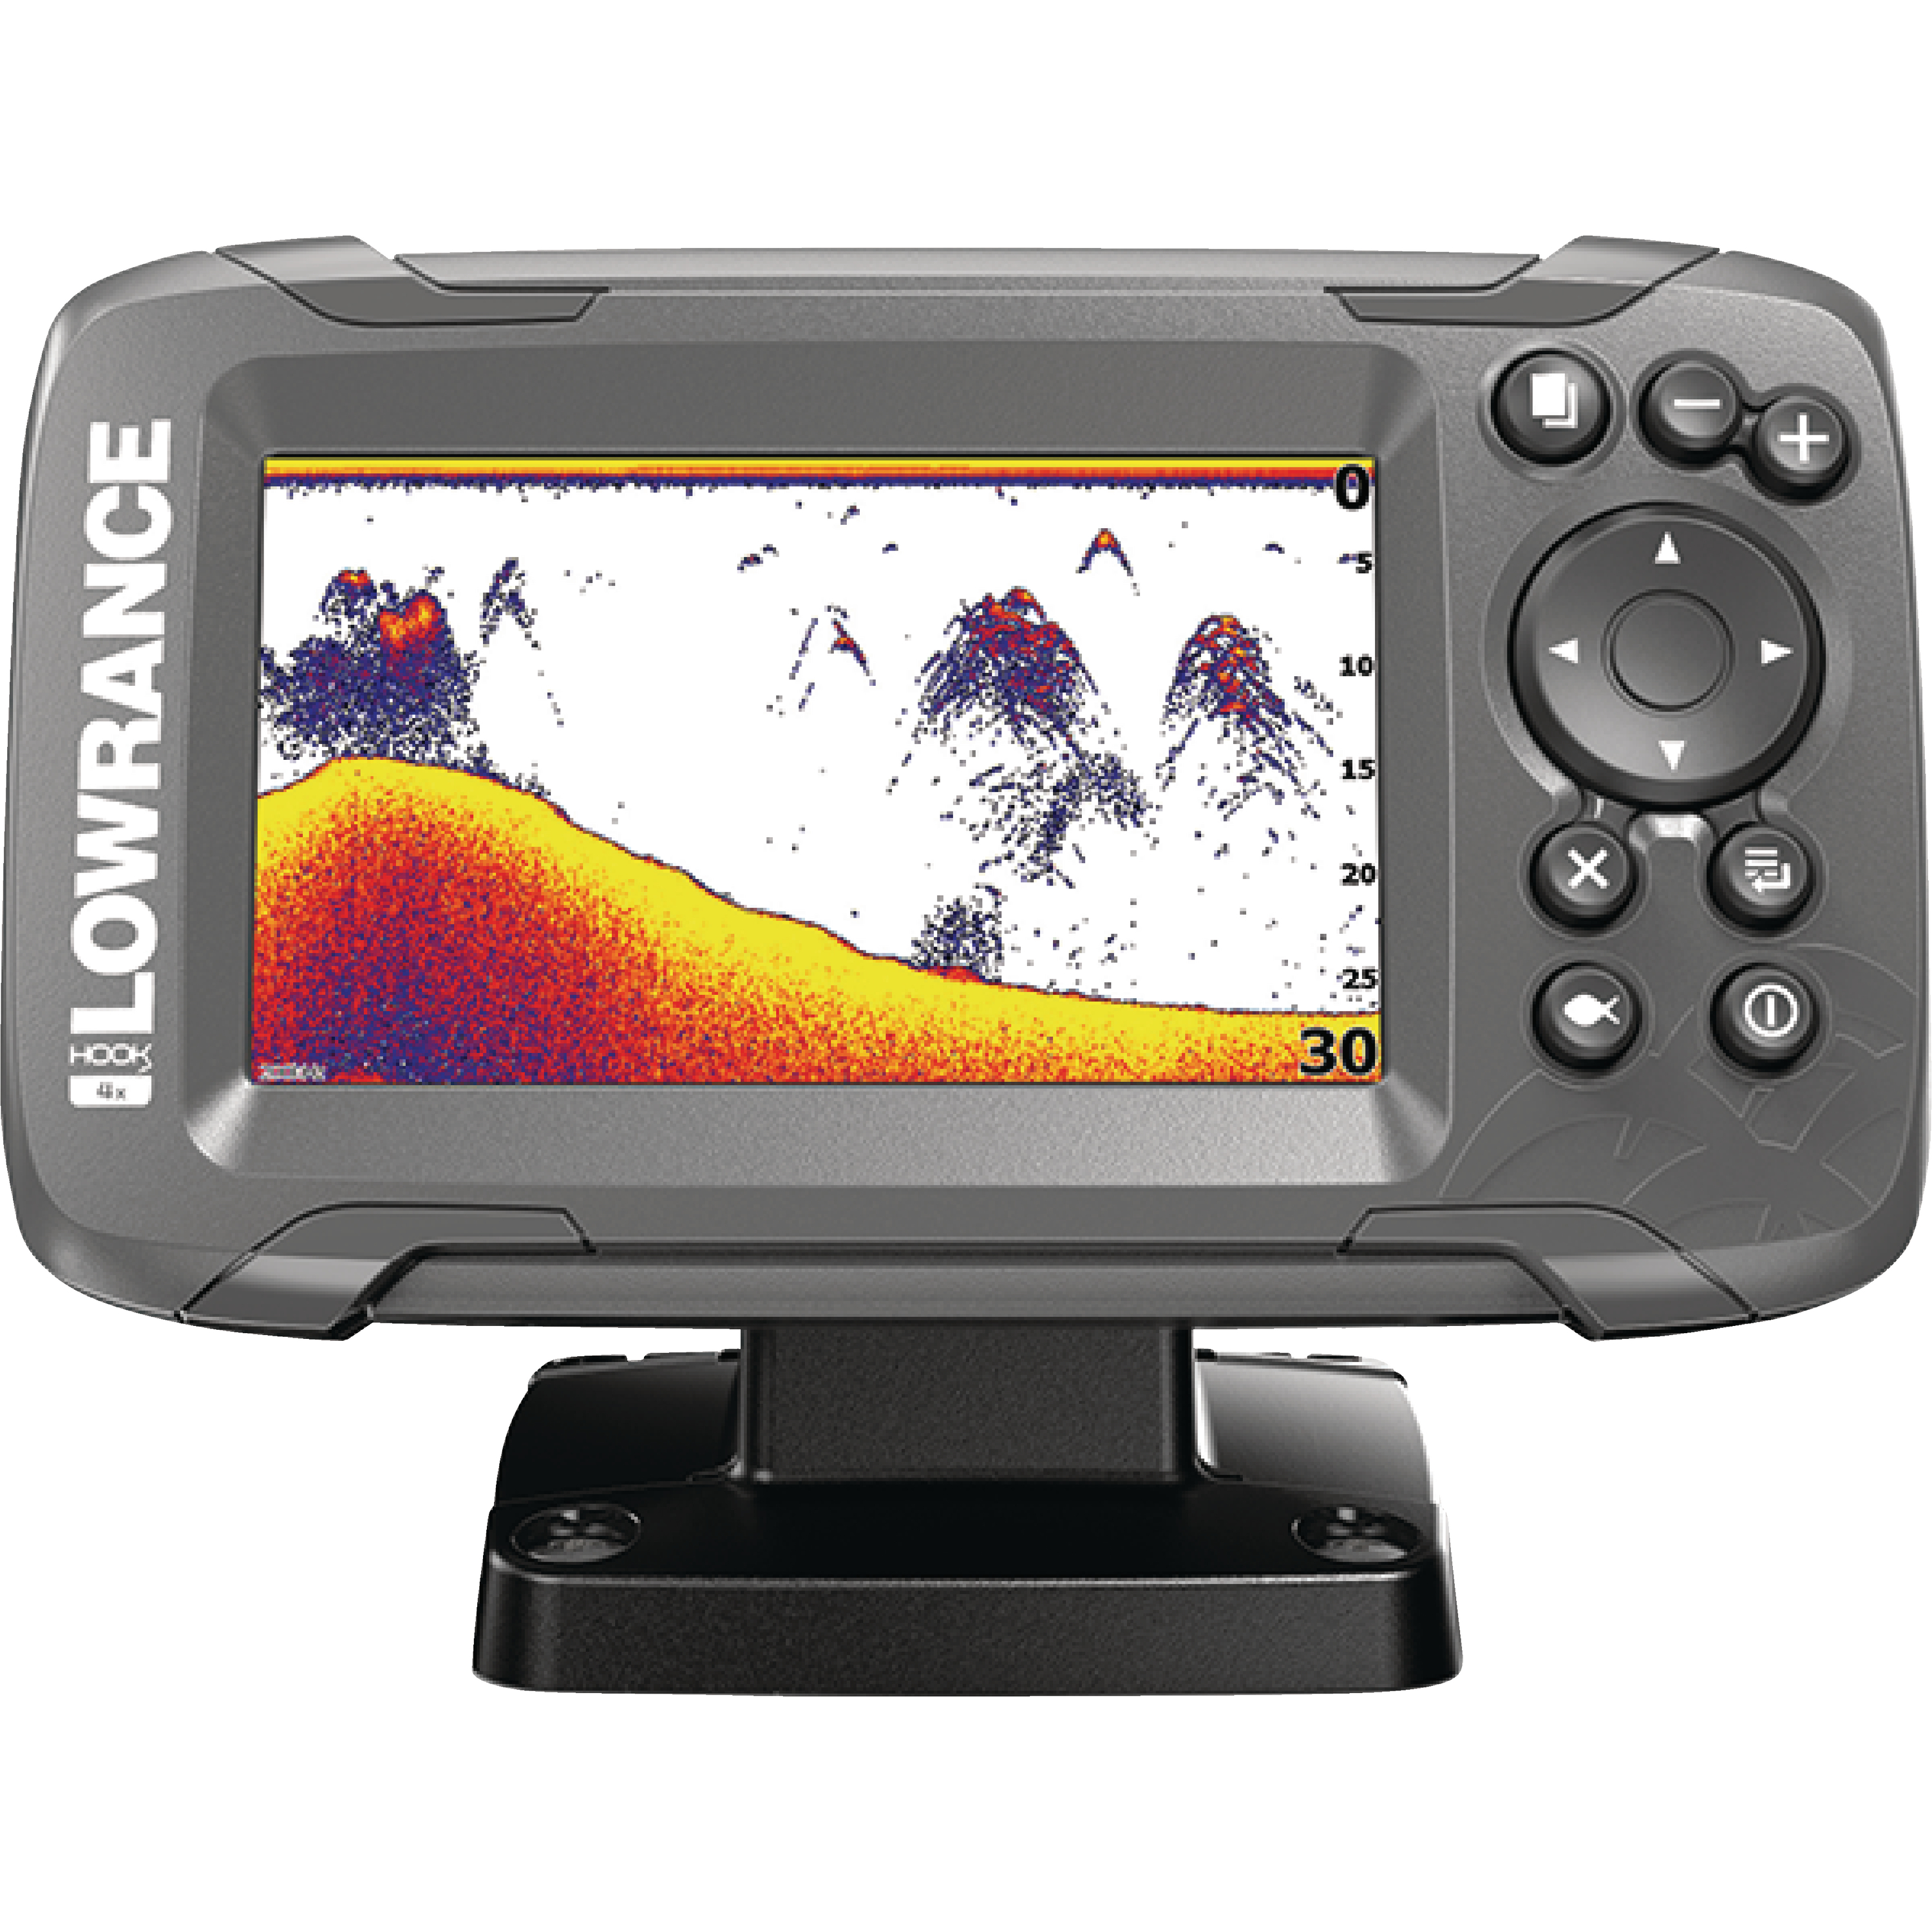 """Lowrance 000-14012-001 HOOK-2 4X Fishfinder with Bullet Skimmer Transducer, Autotuning Sonar & 4"""" Display"""